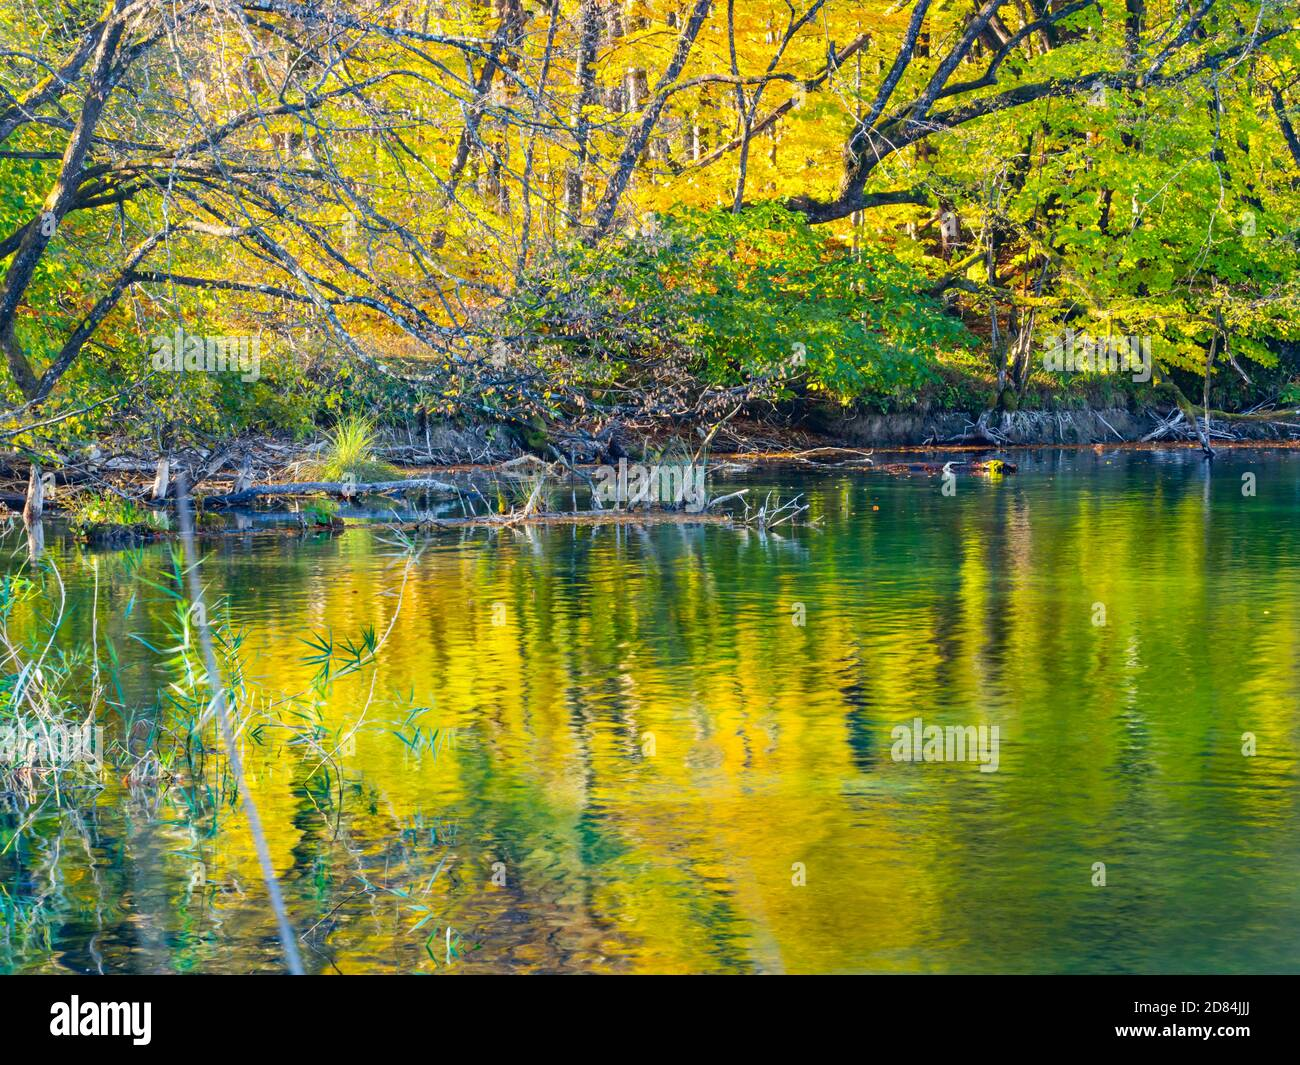 Lake coast reflection Autumnal scenery in Plitvice lakes national park situated in Croatia Europe Stock Photo